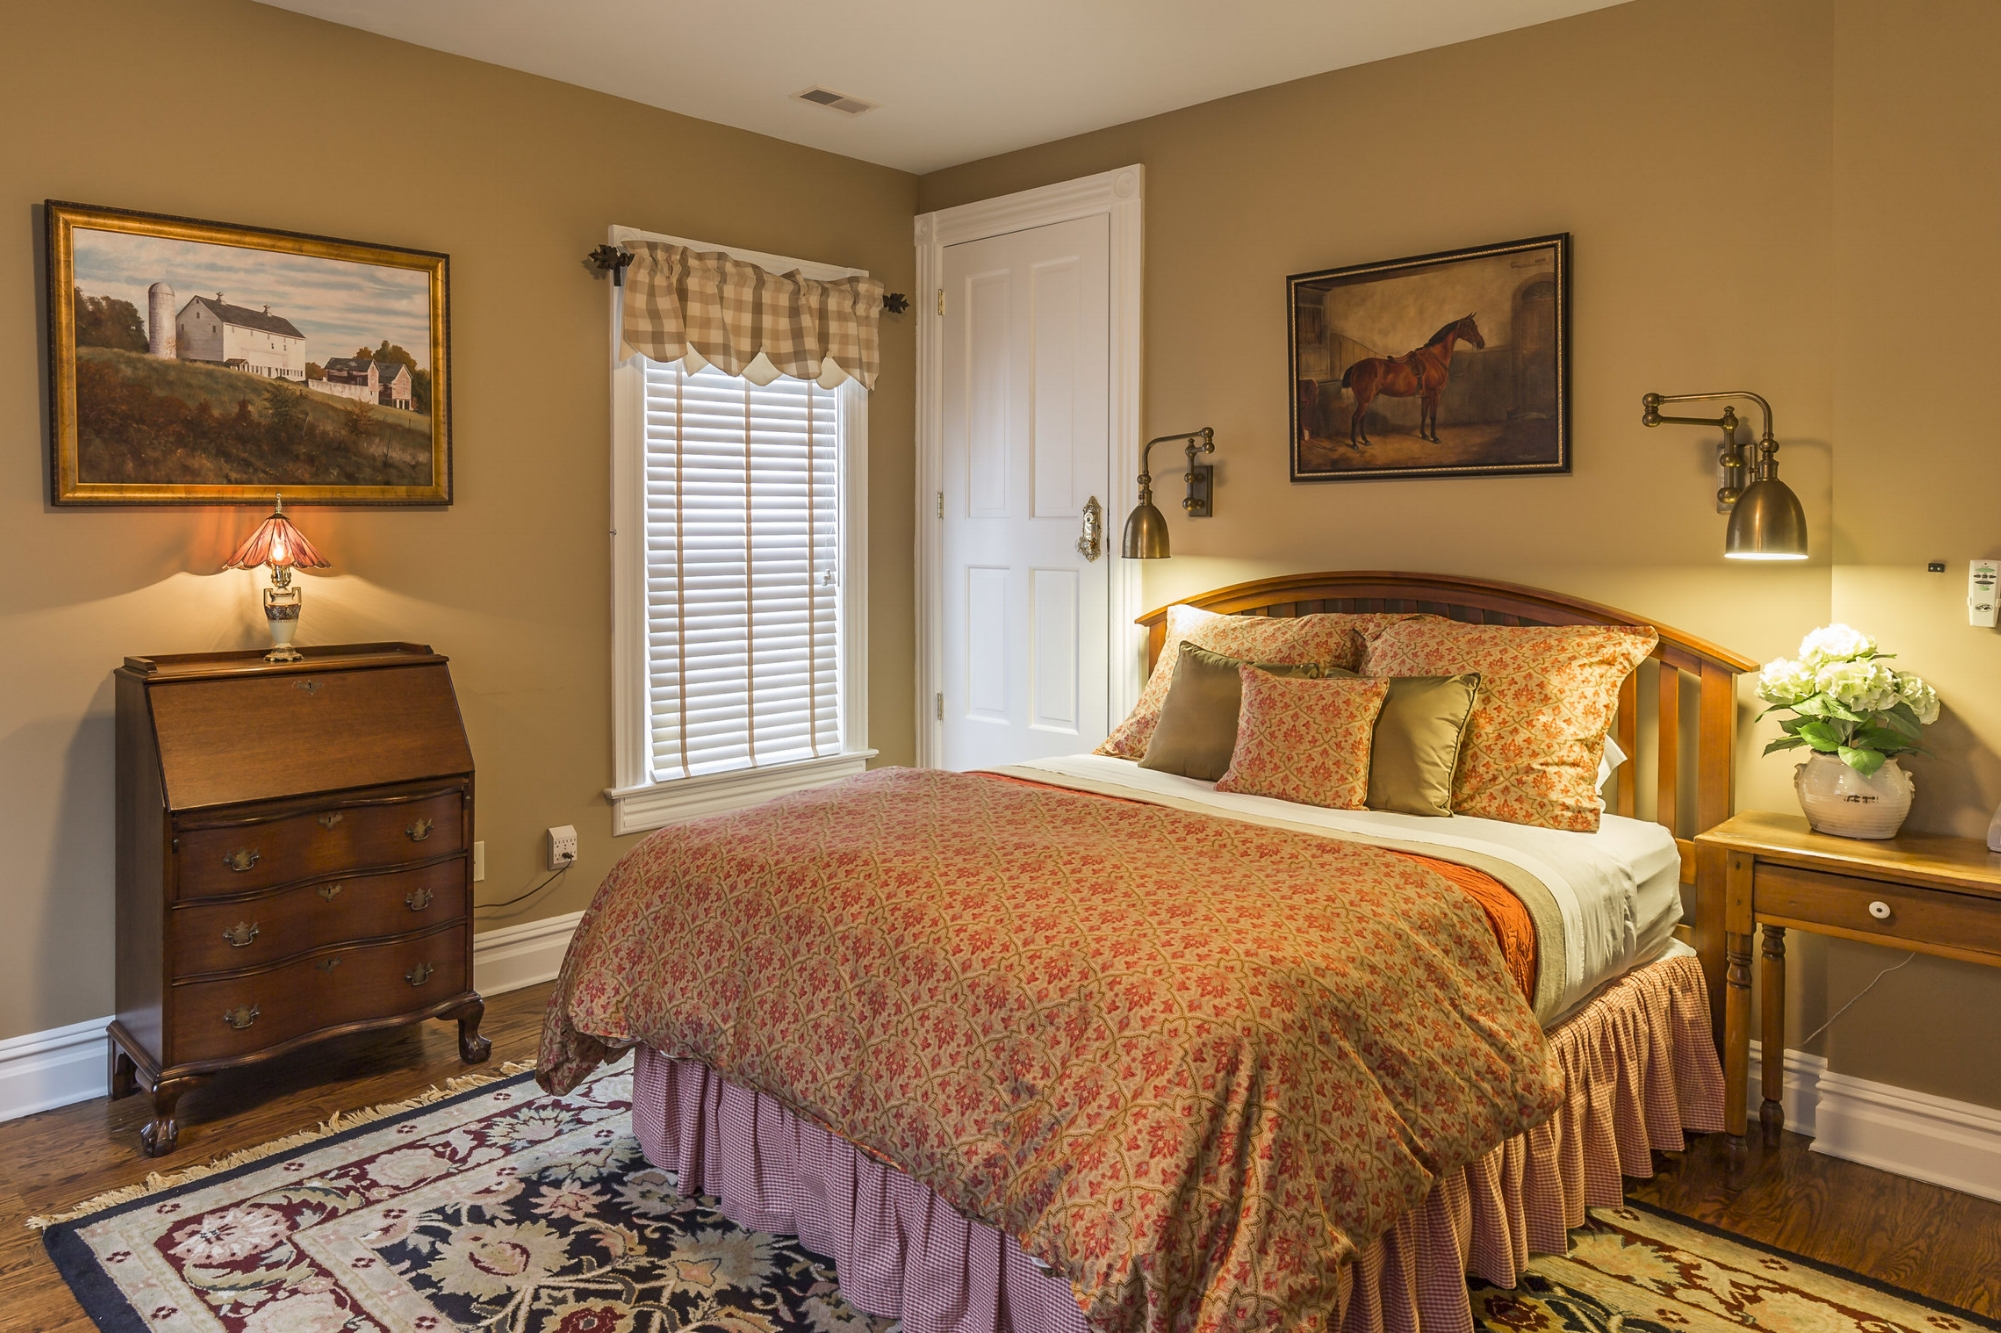 Hunterdon guest room2.jpg